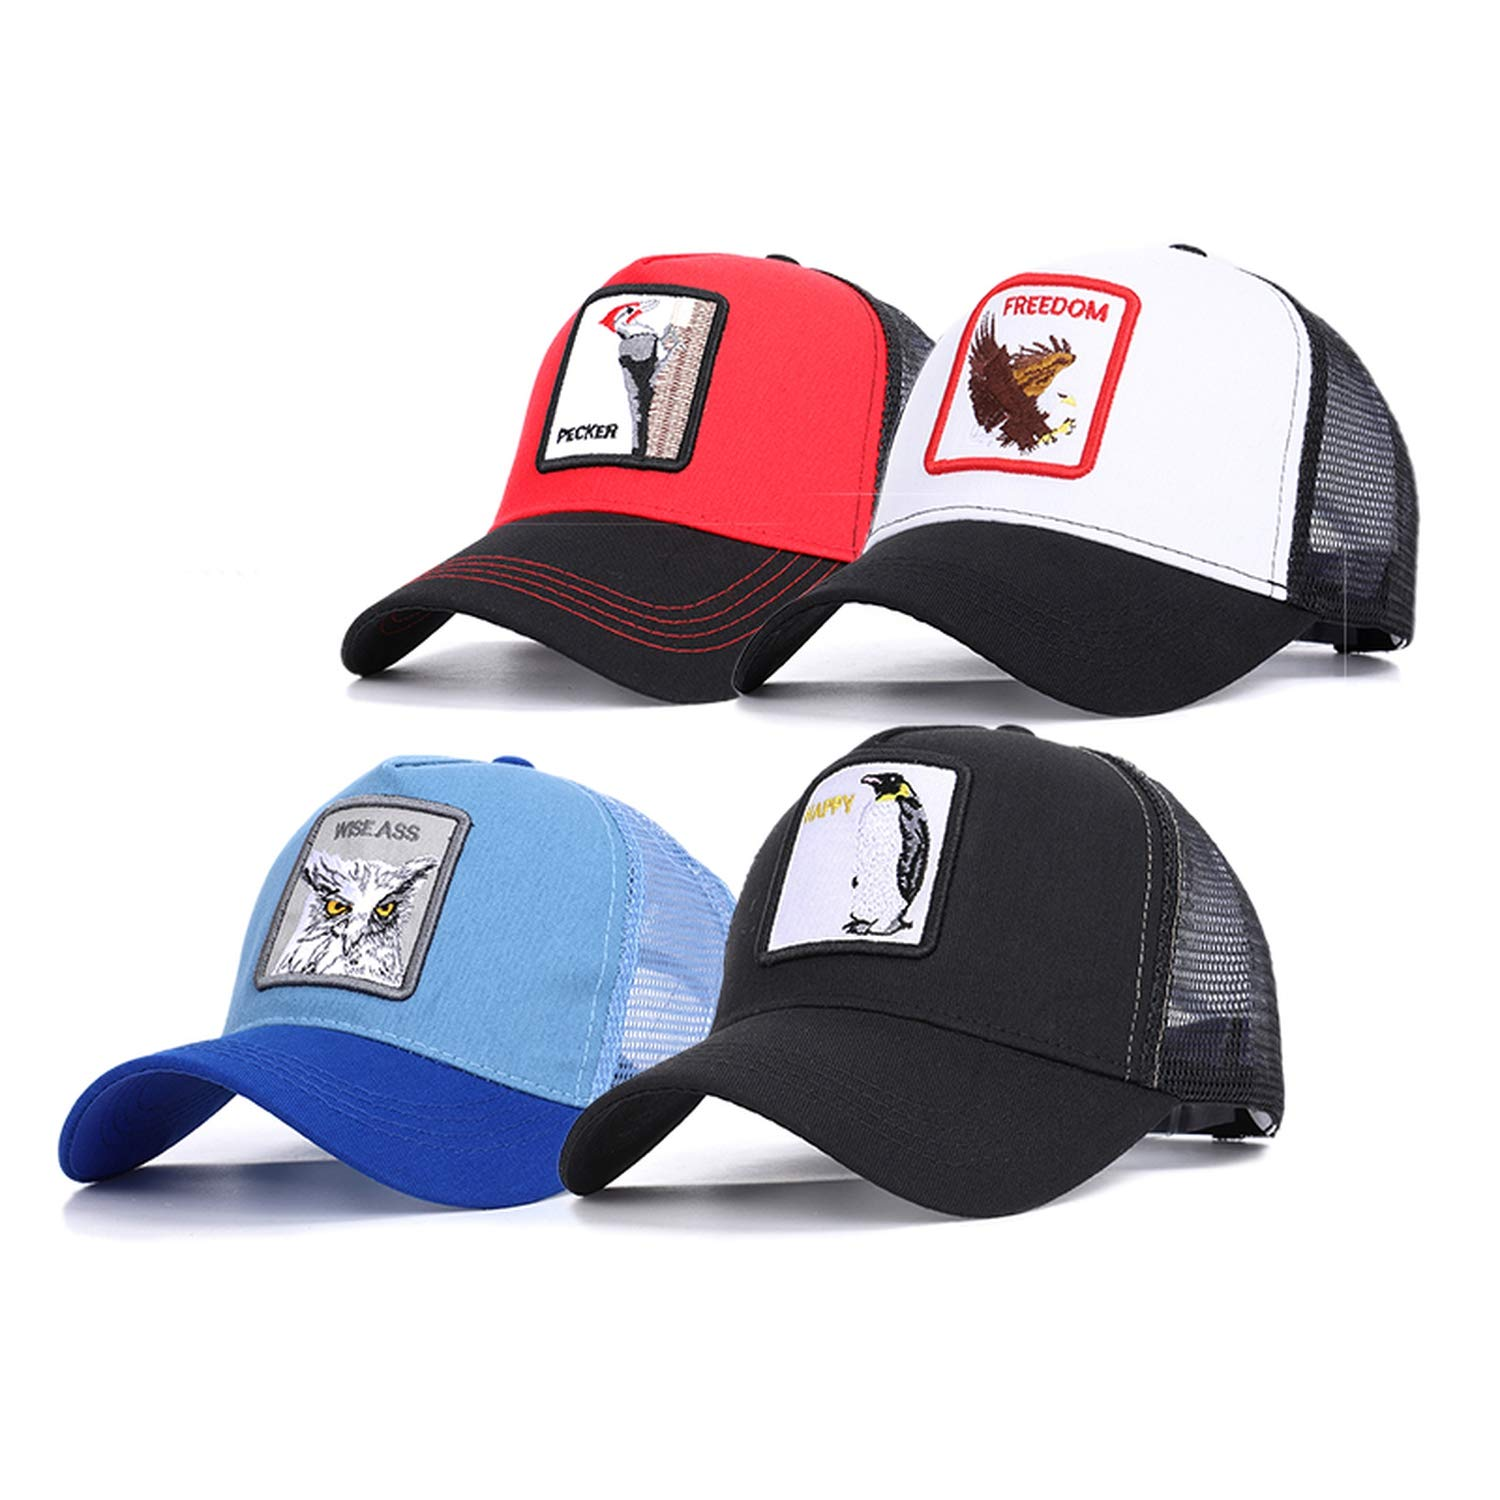 Classic Knitted Baseball caps Breathable Adjustable Unisex Fashion Animal Embroidery Hats